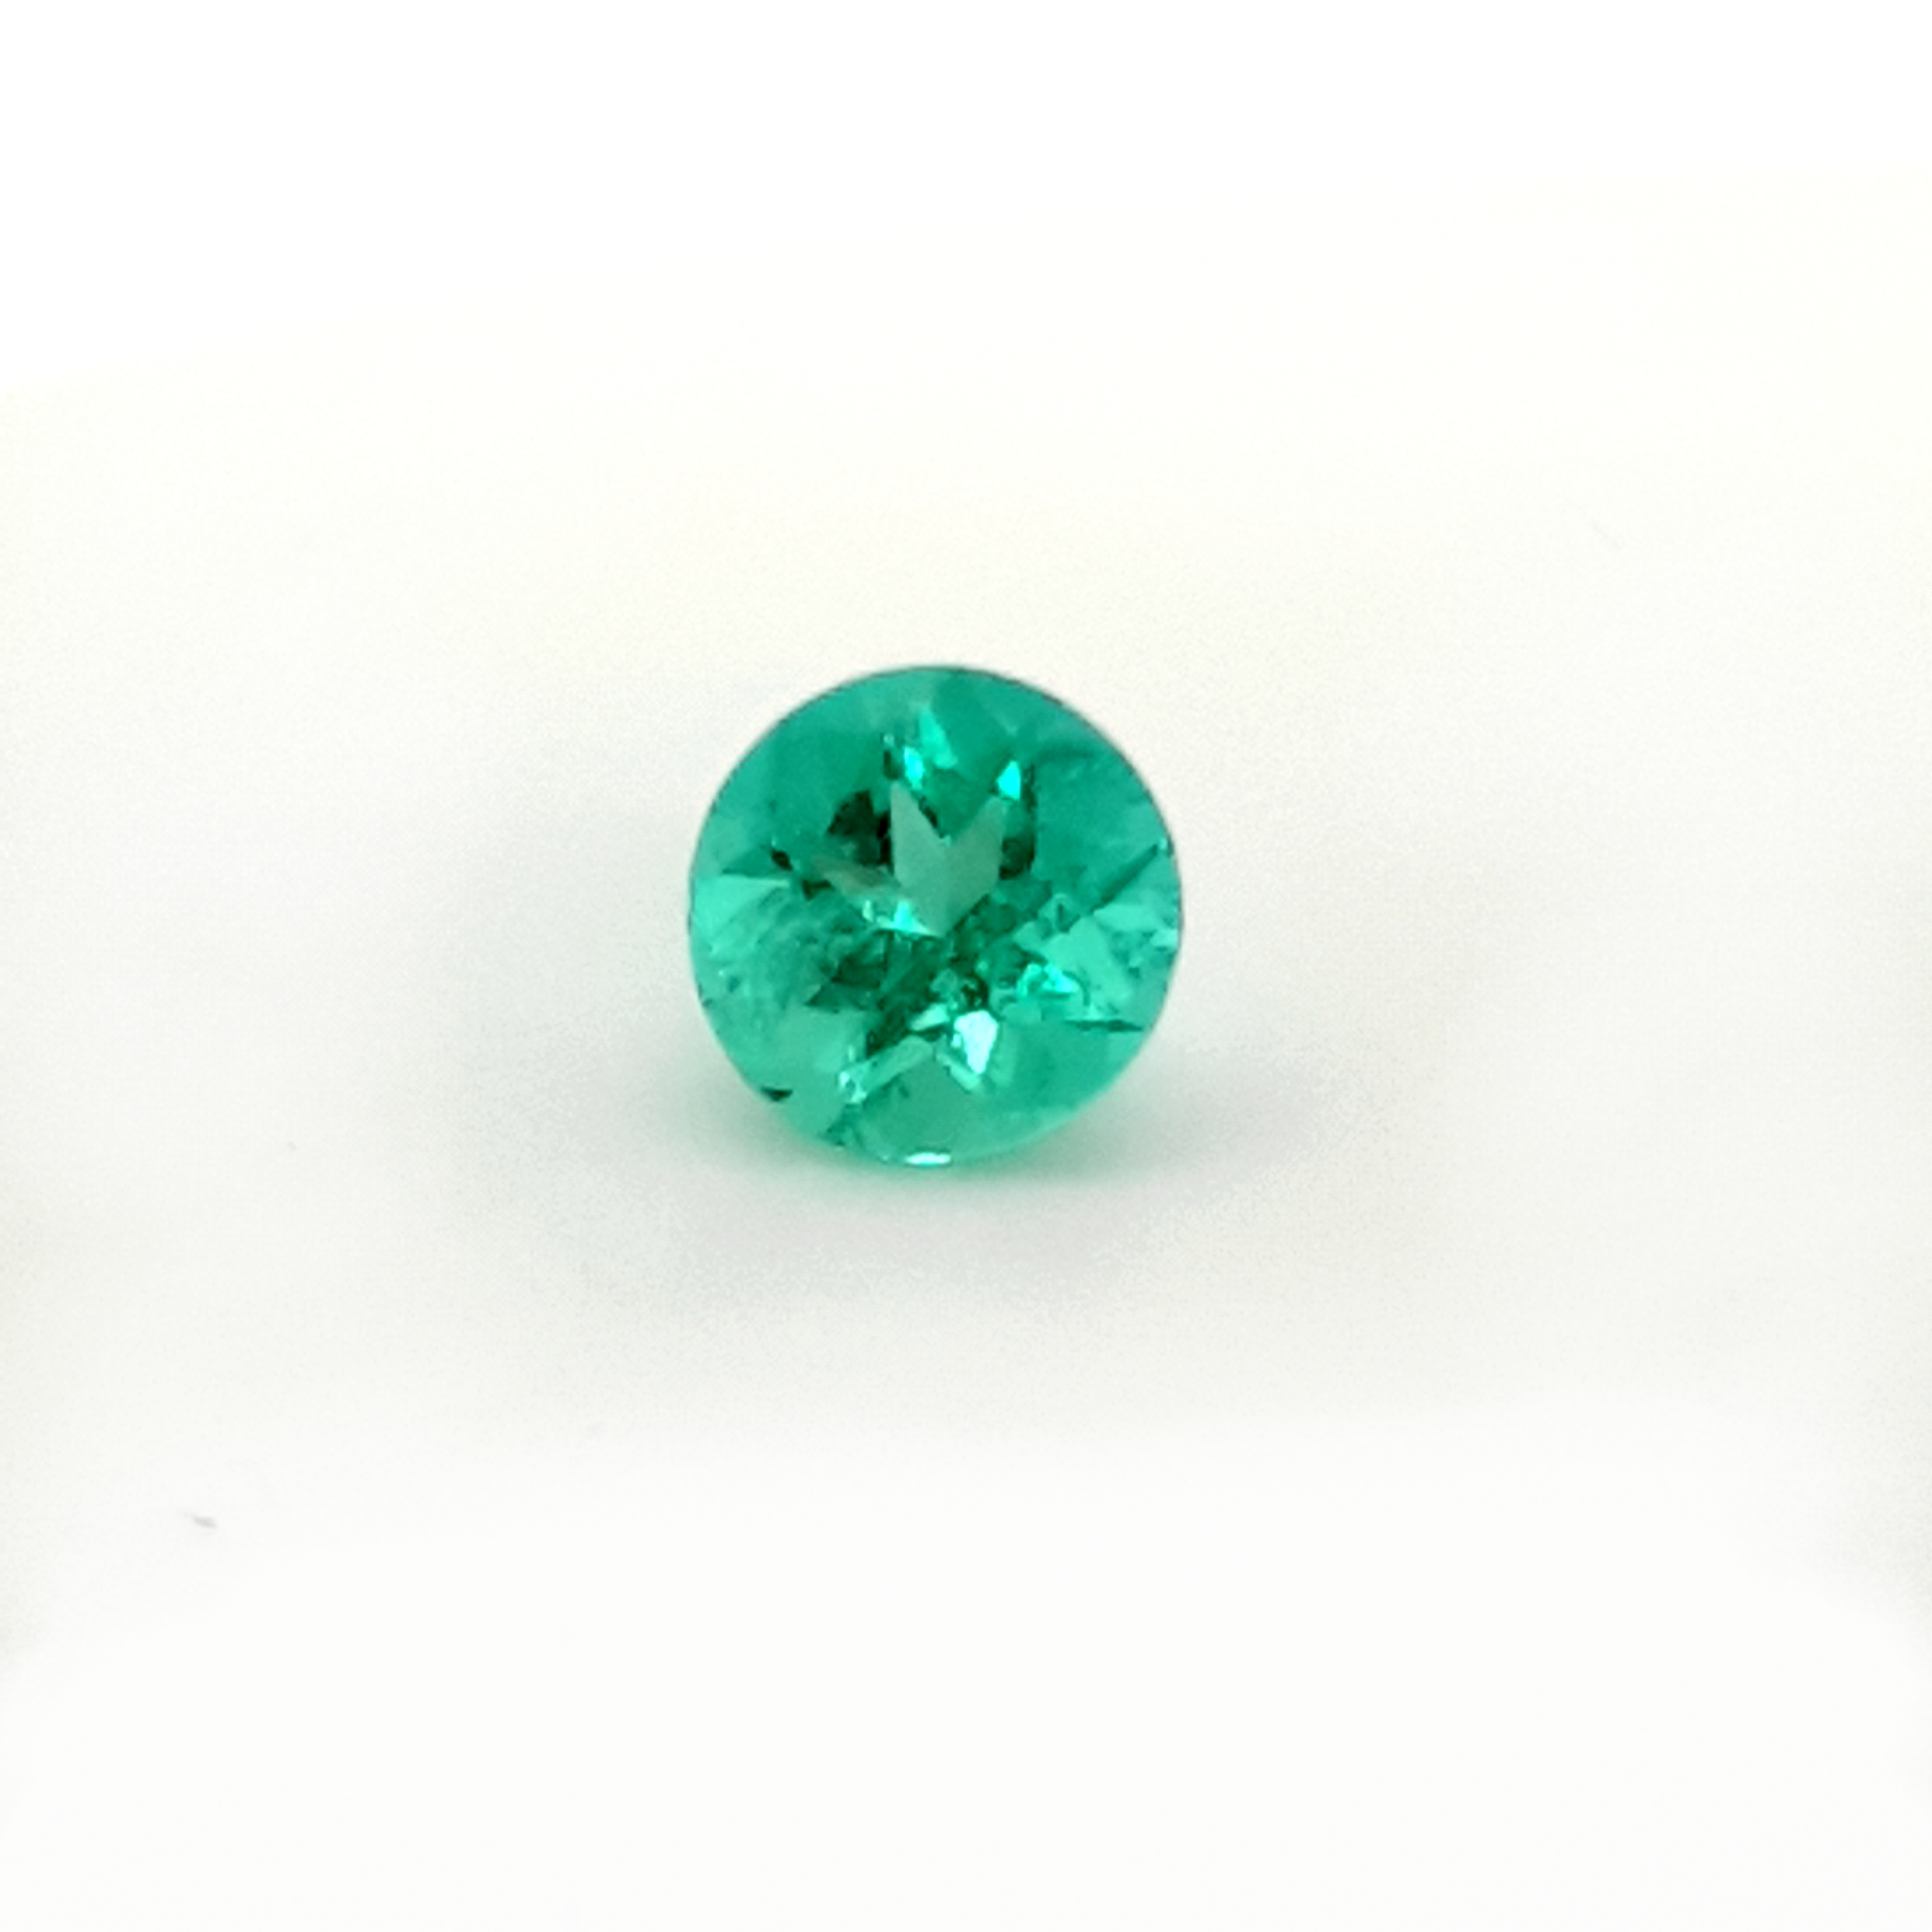 1,59ct. Round Emerald from Colombia EMB21C5 ClaudiaHamann__2021-03-29-23-50-54